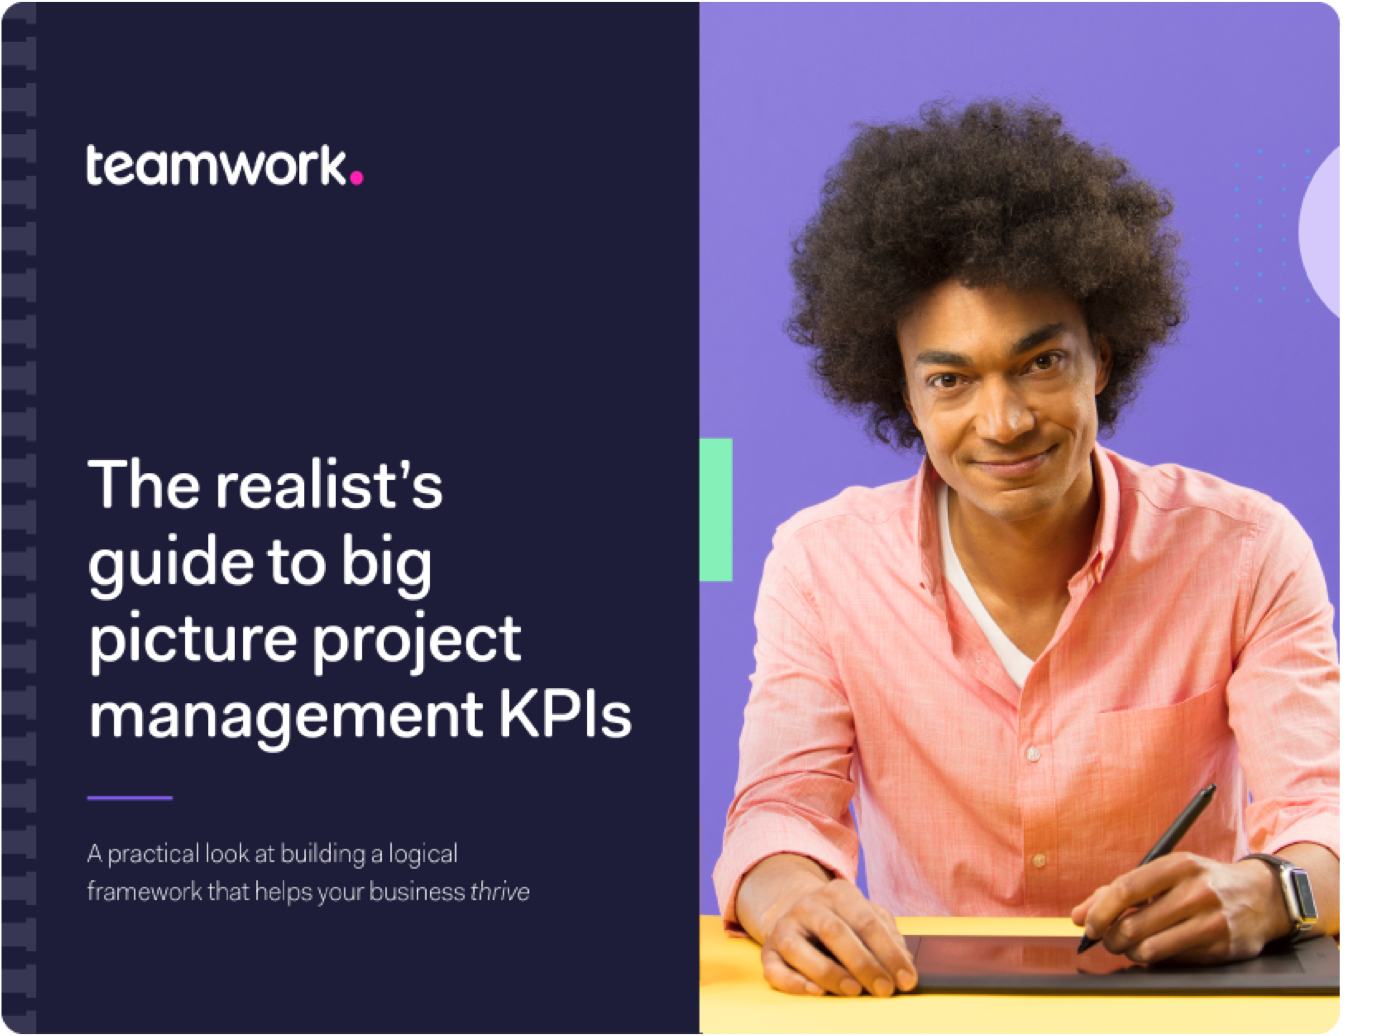 The realist's guide to big picture project management KPIs